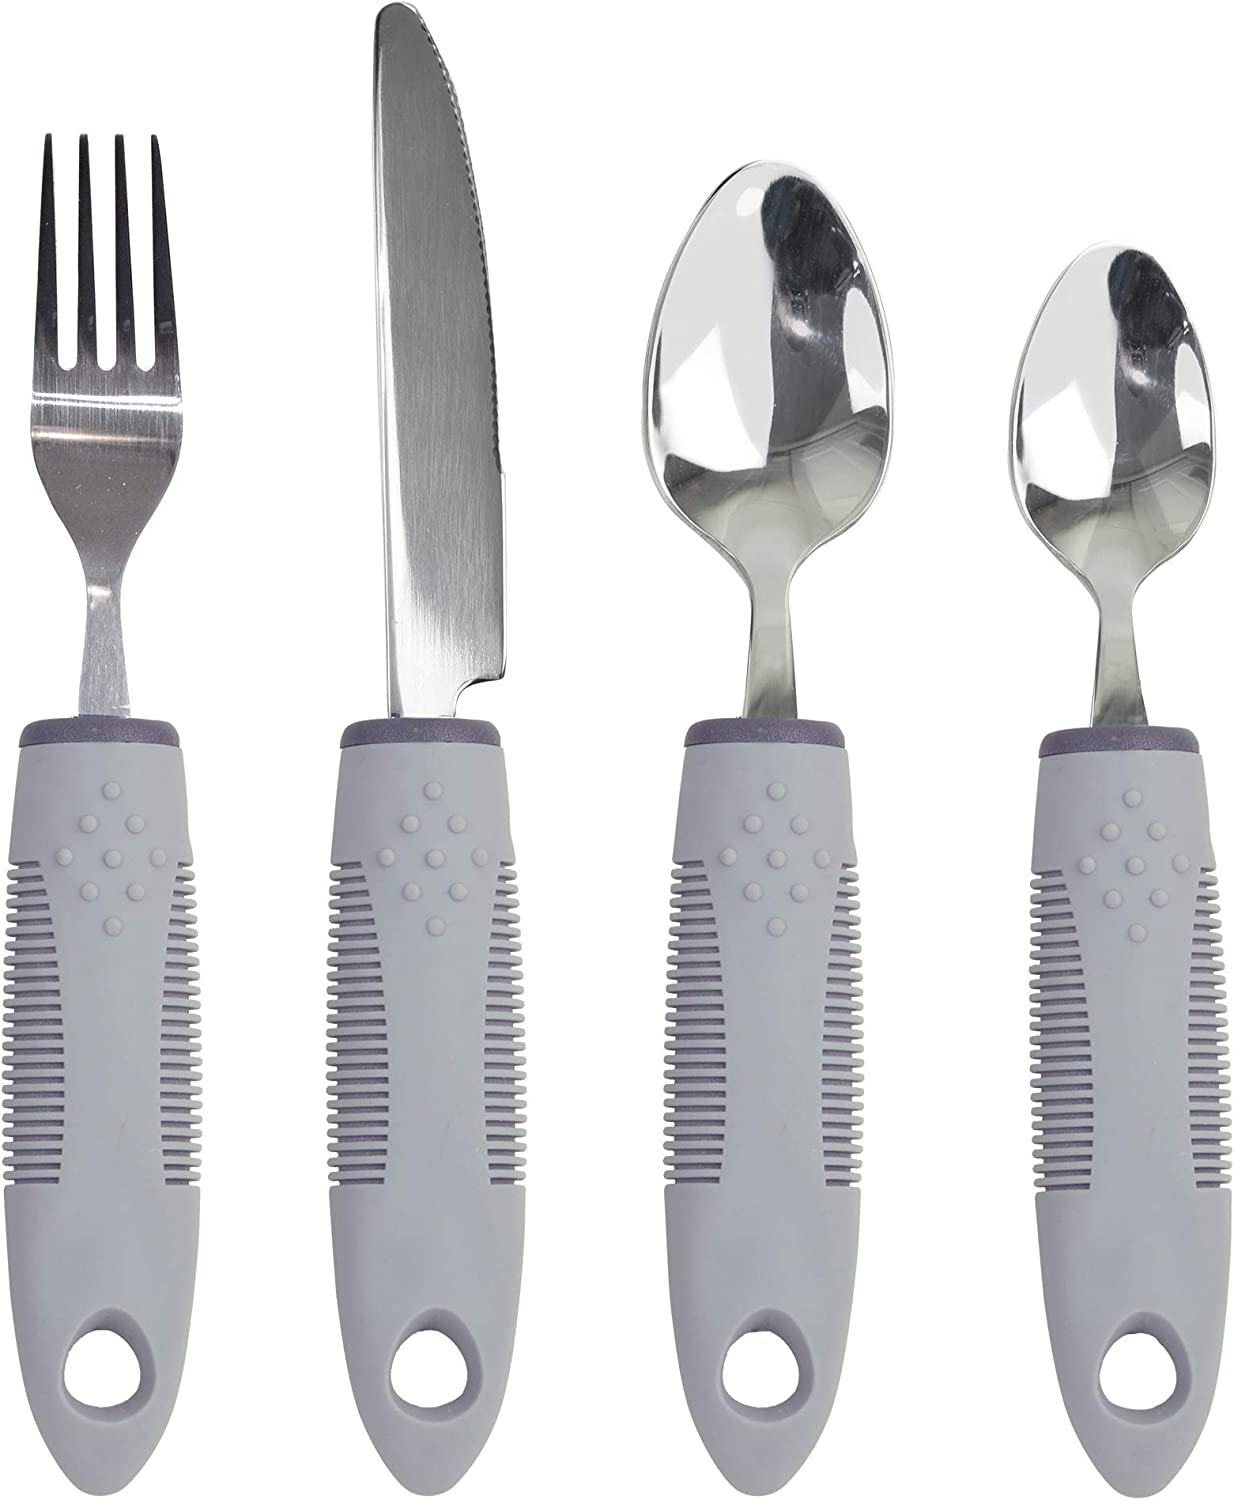 KMD Adaptive Utensils Set with Built-Up Non-Weighted Handles (4-Piece), Fork, Knife, and 2 Spoons for Arthritis, Parkinson's, Tremors, Elderly or Disabled (Black): Health & Personal Care